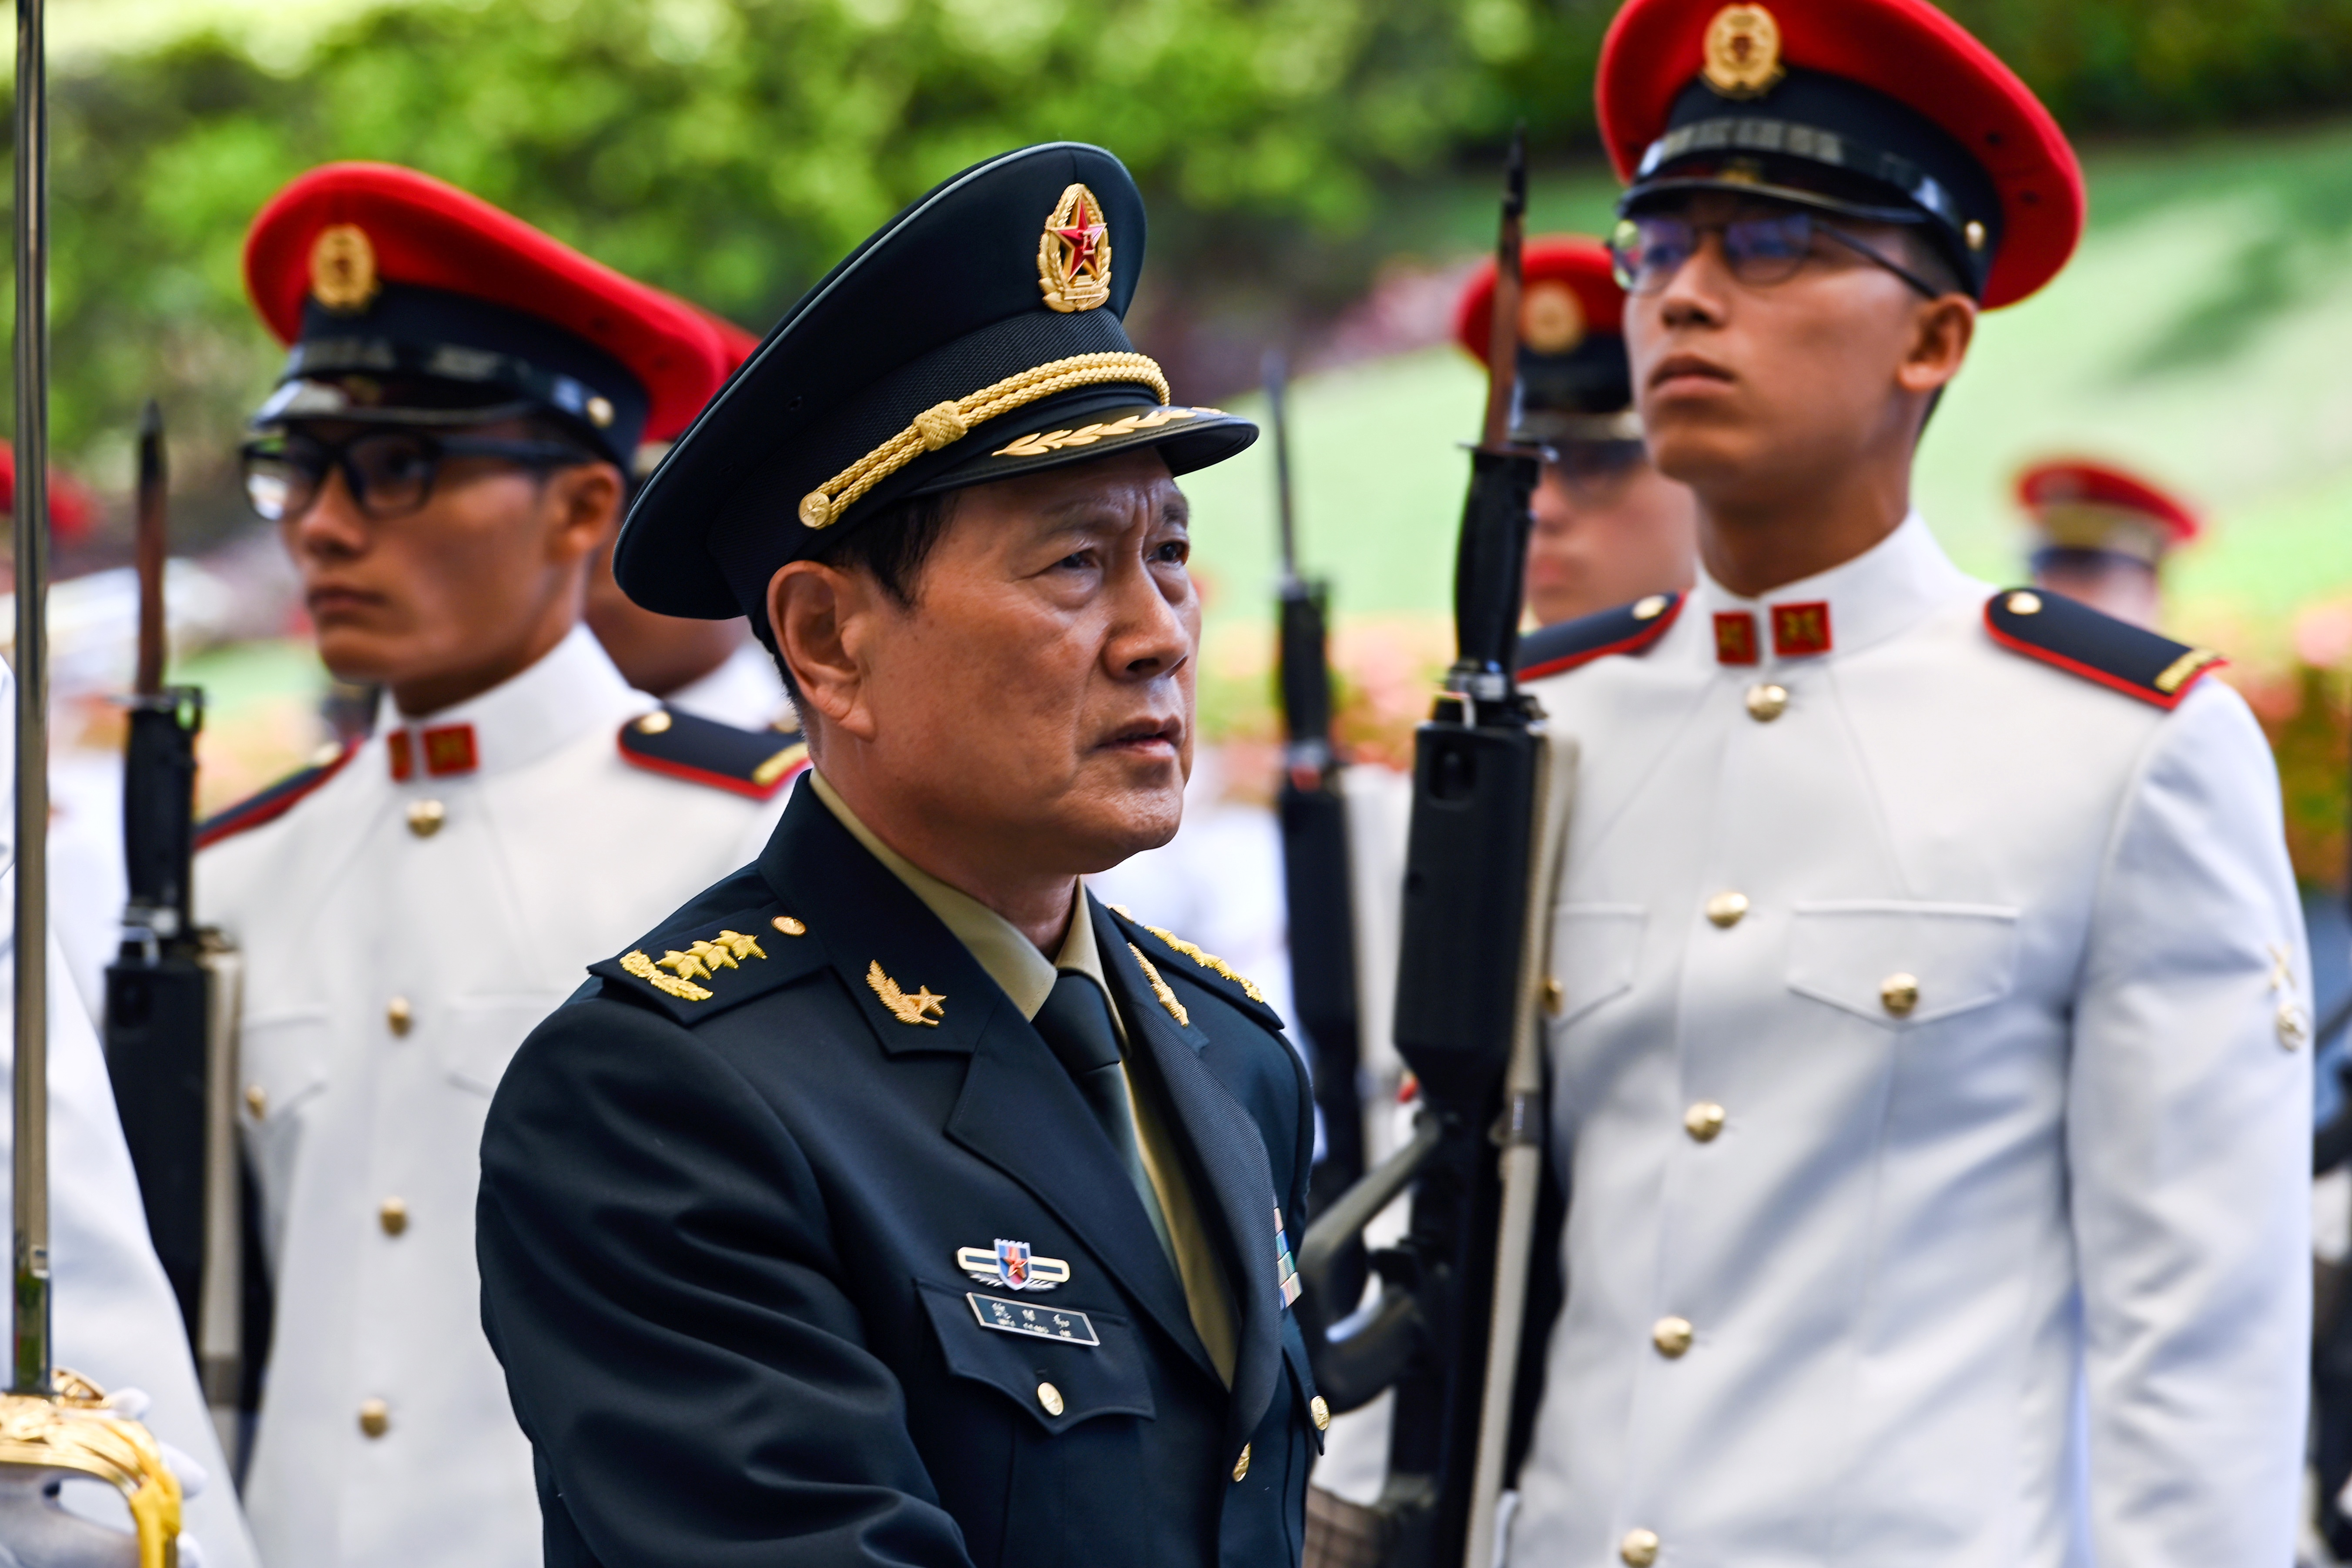 Chinese Defense Minster Wei Fenghe inspects the honor guard during a welcoming ceremony at the Ministry of Defense in Singapore, May 29, 2019.